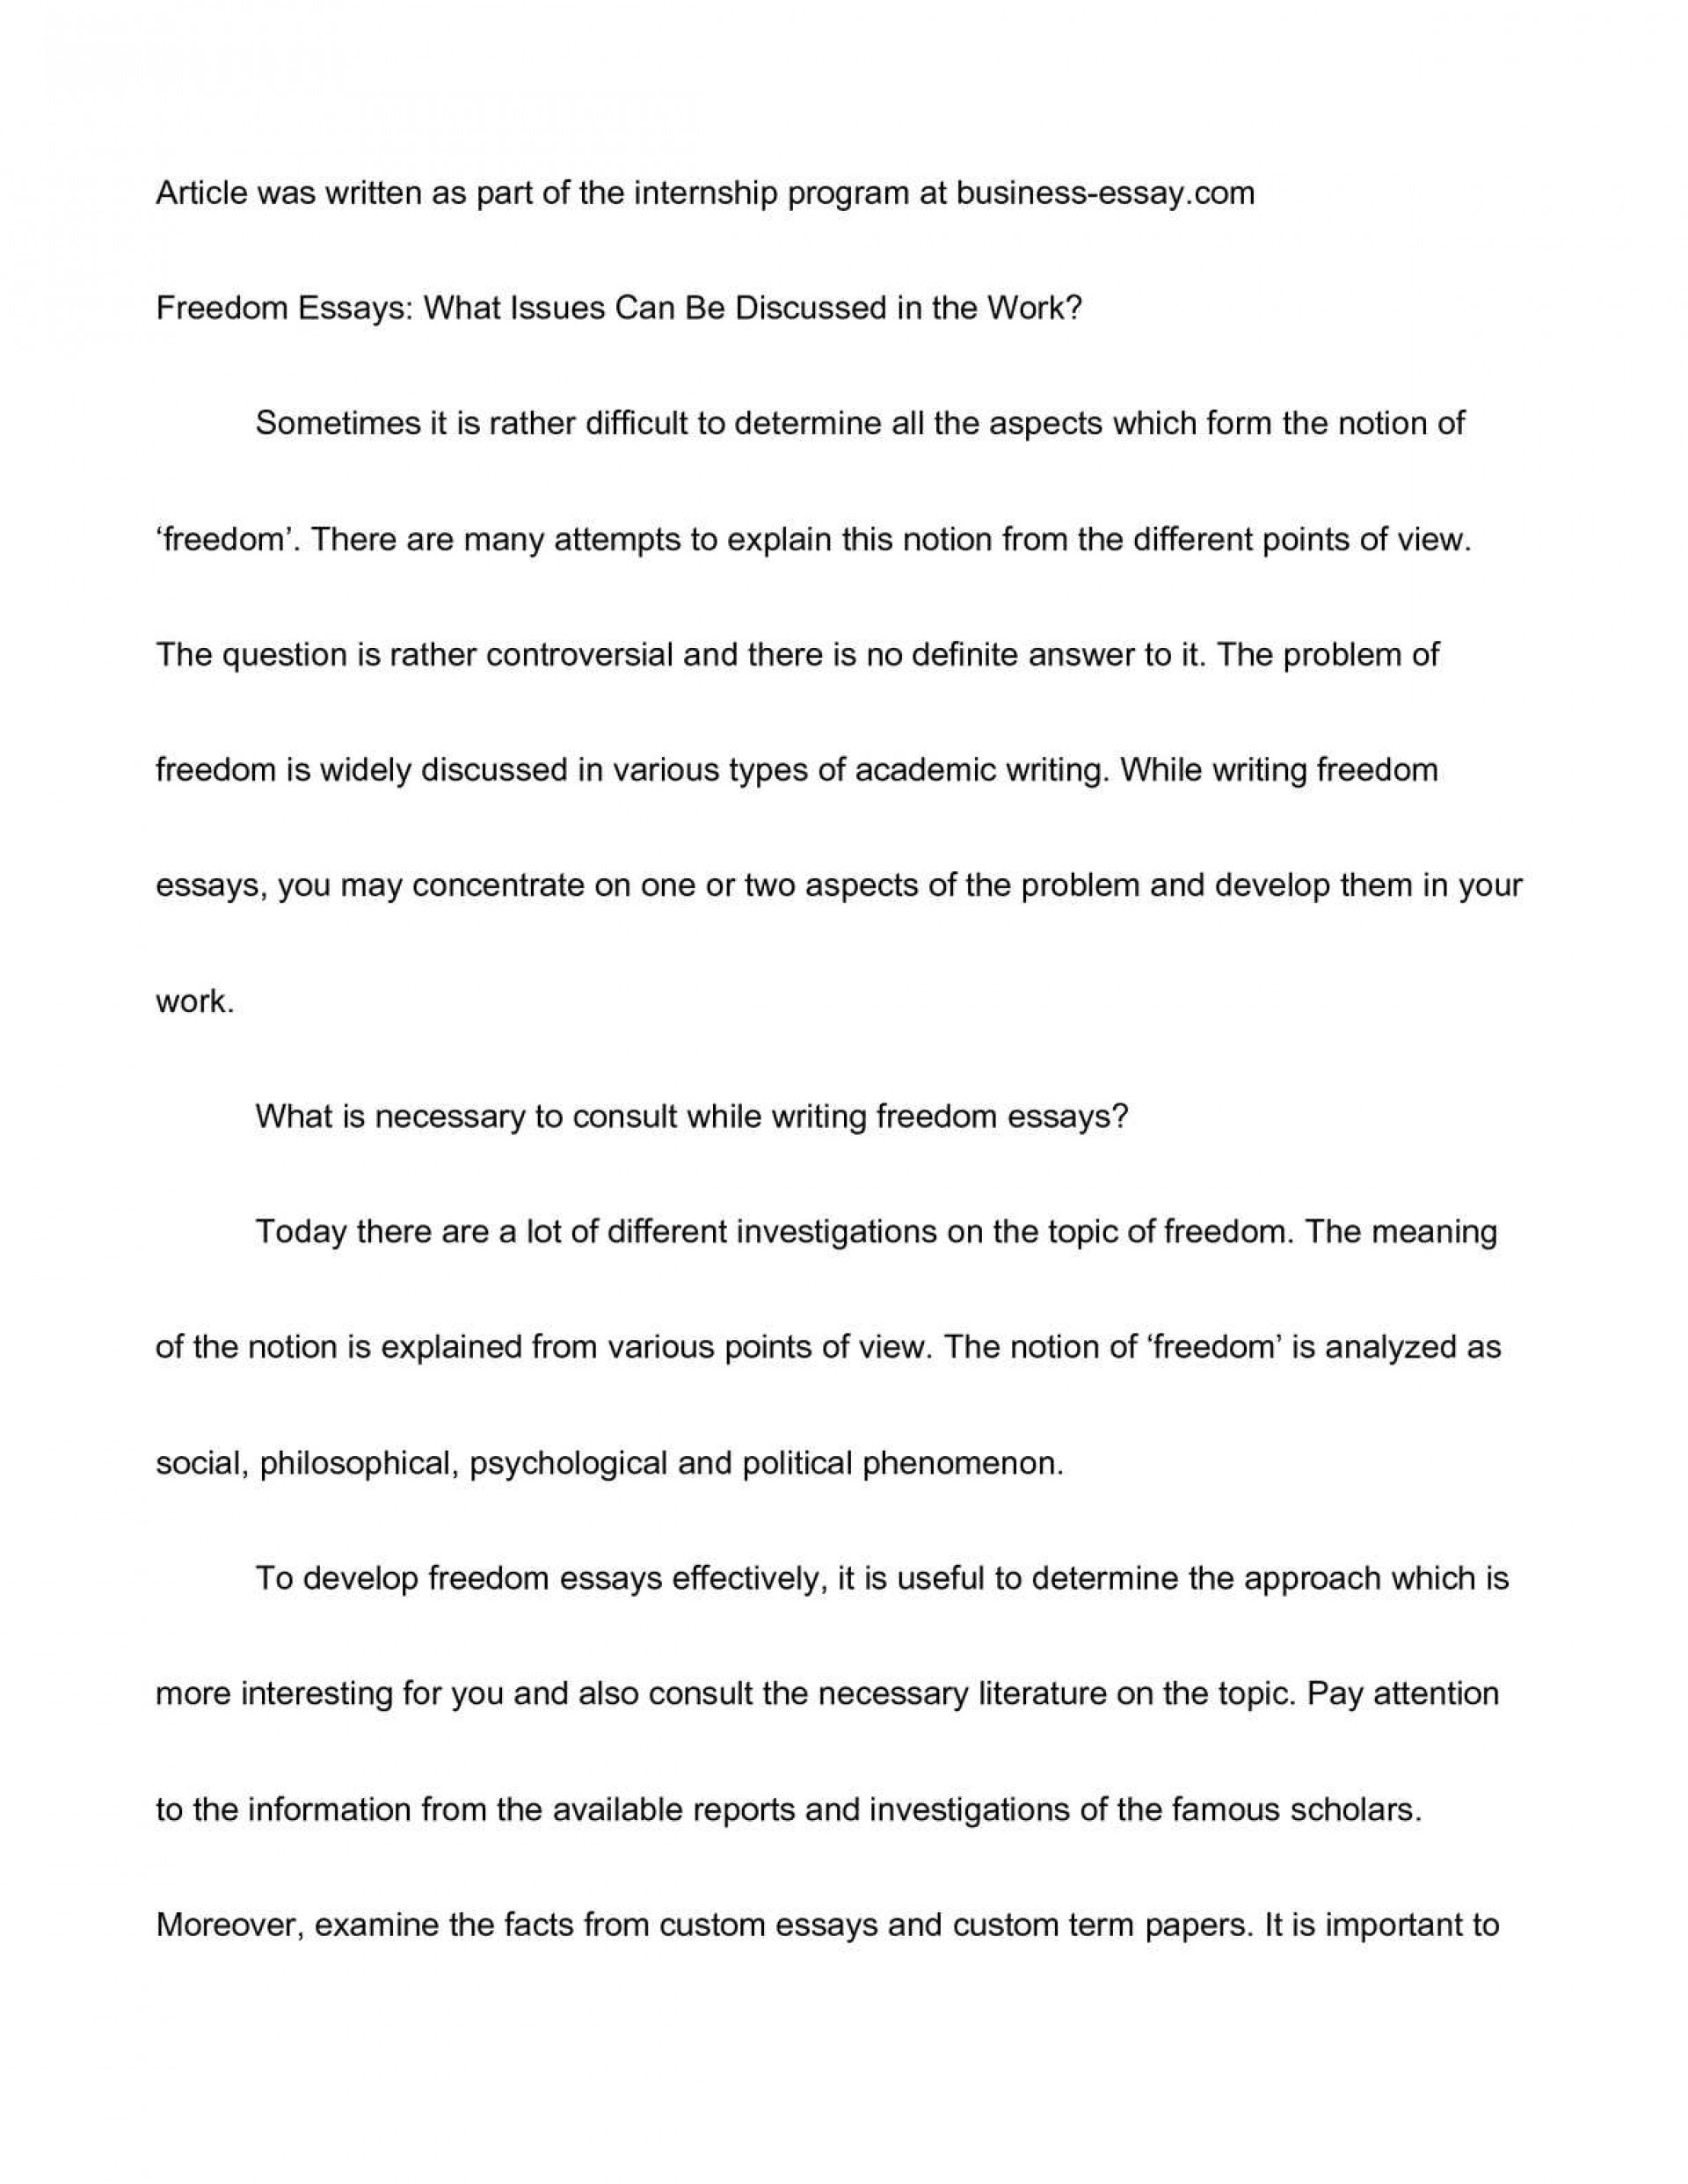 essay on freedom in 150 words